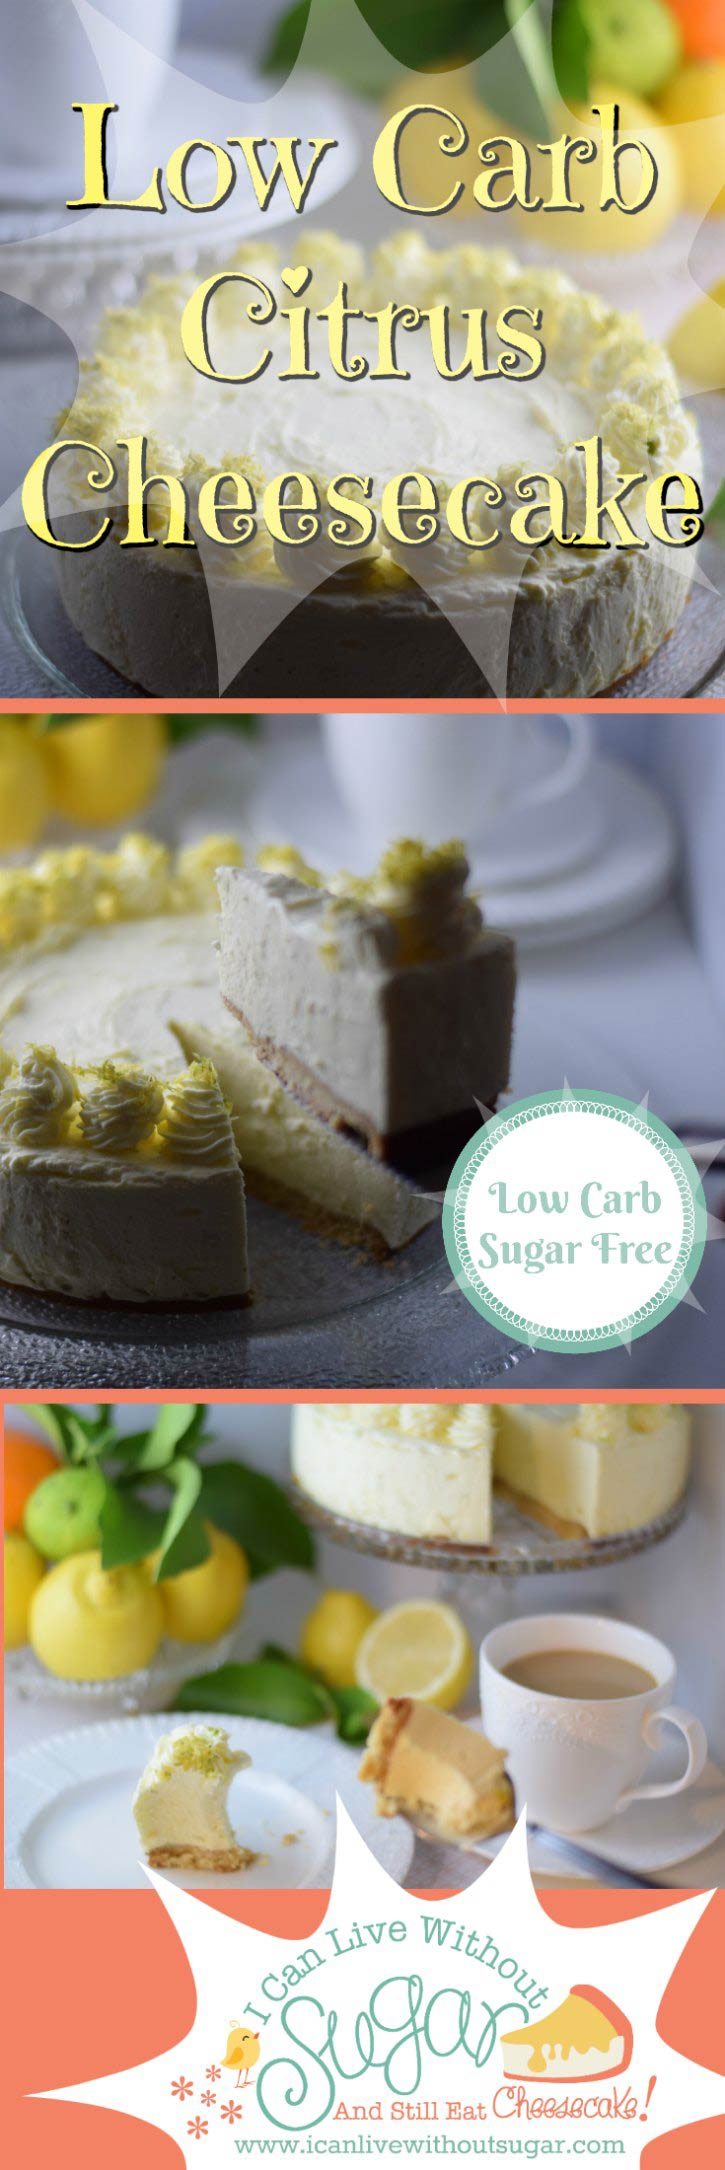 This low carb sugar free citrus cheesecake tastes as good as it looks. Creamy, rich, sweet and tangy. Sugar free dessert perfection. This one's a winner!